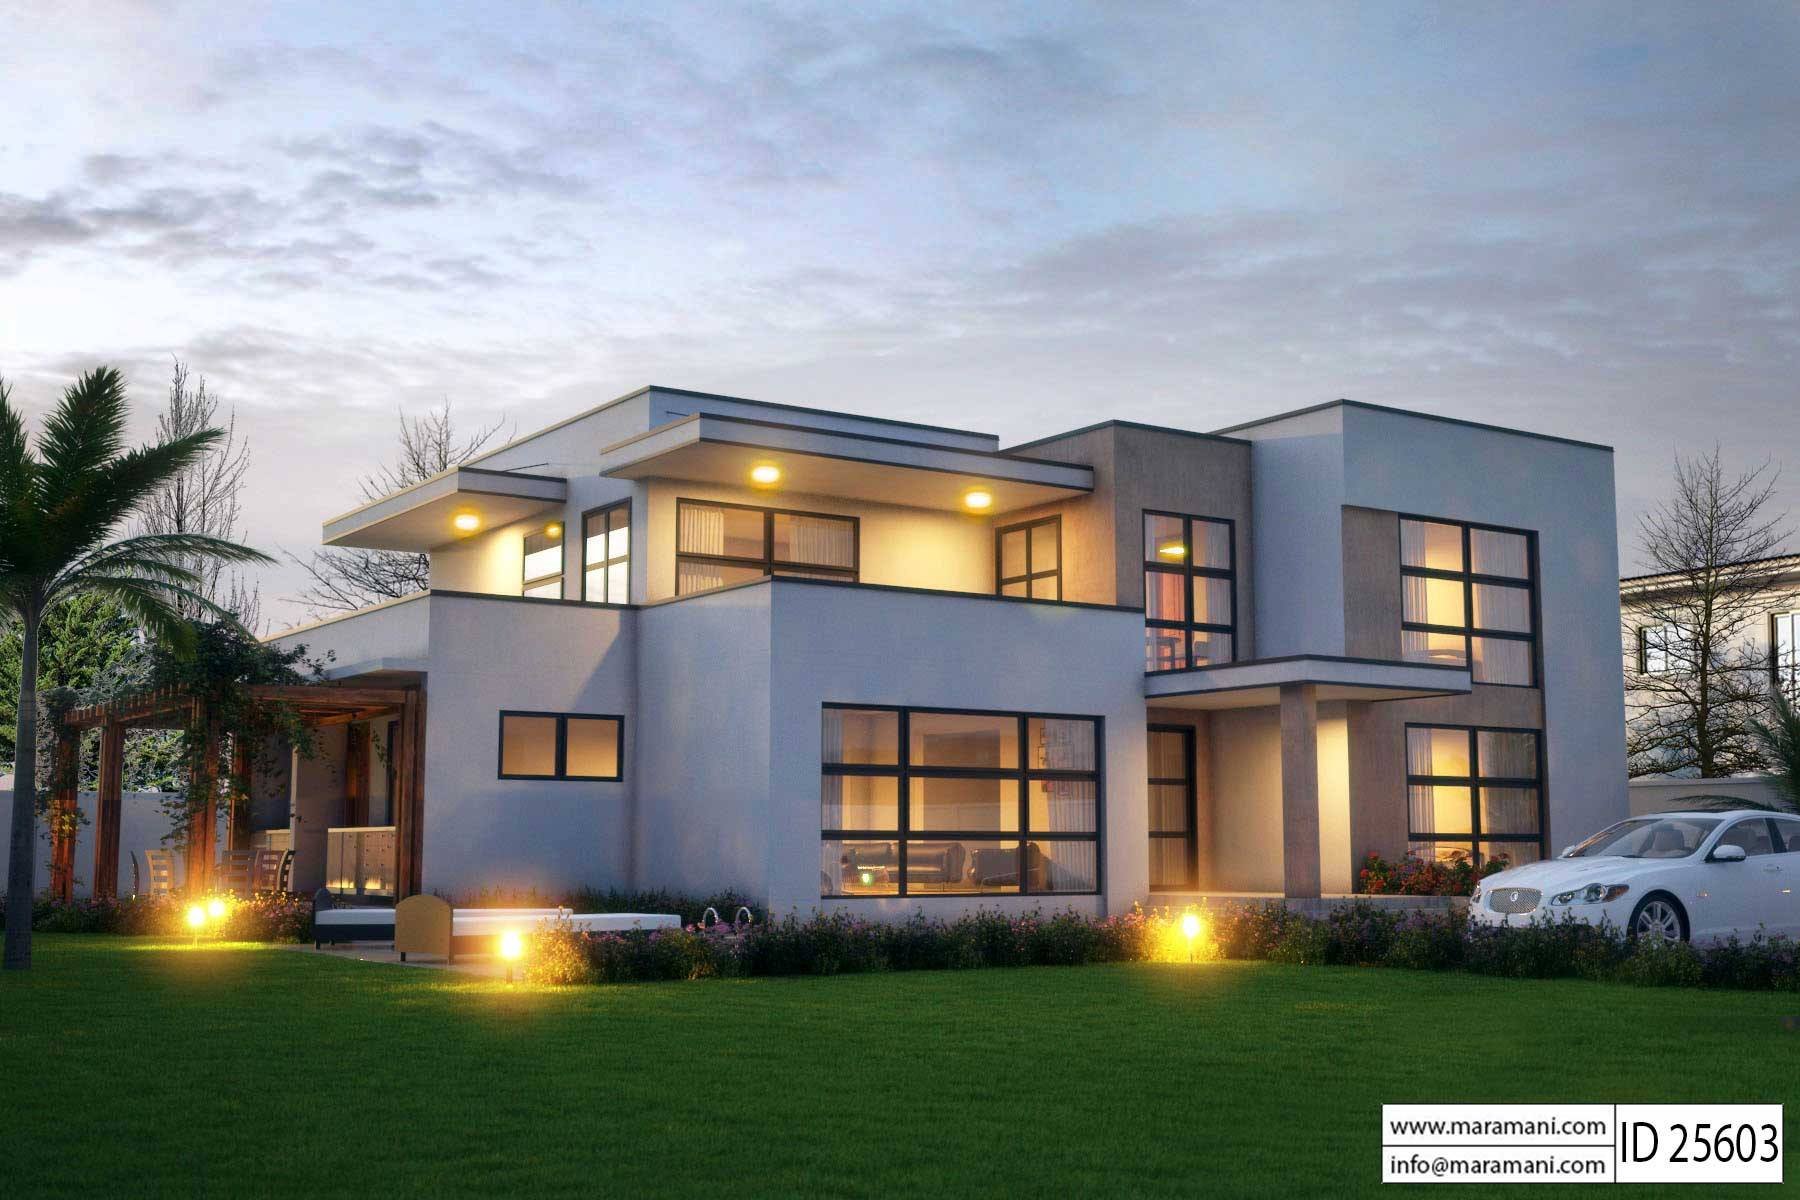 Modern 5 bedroom house design id 25603 floor plans by for Home remodeling architecture